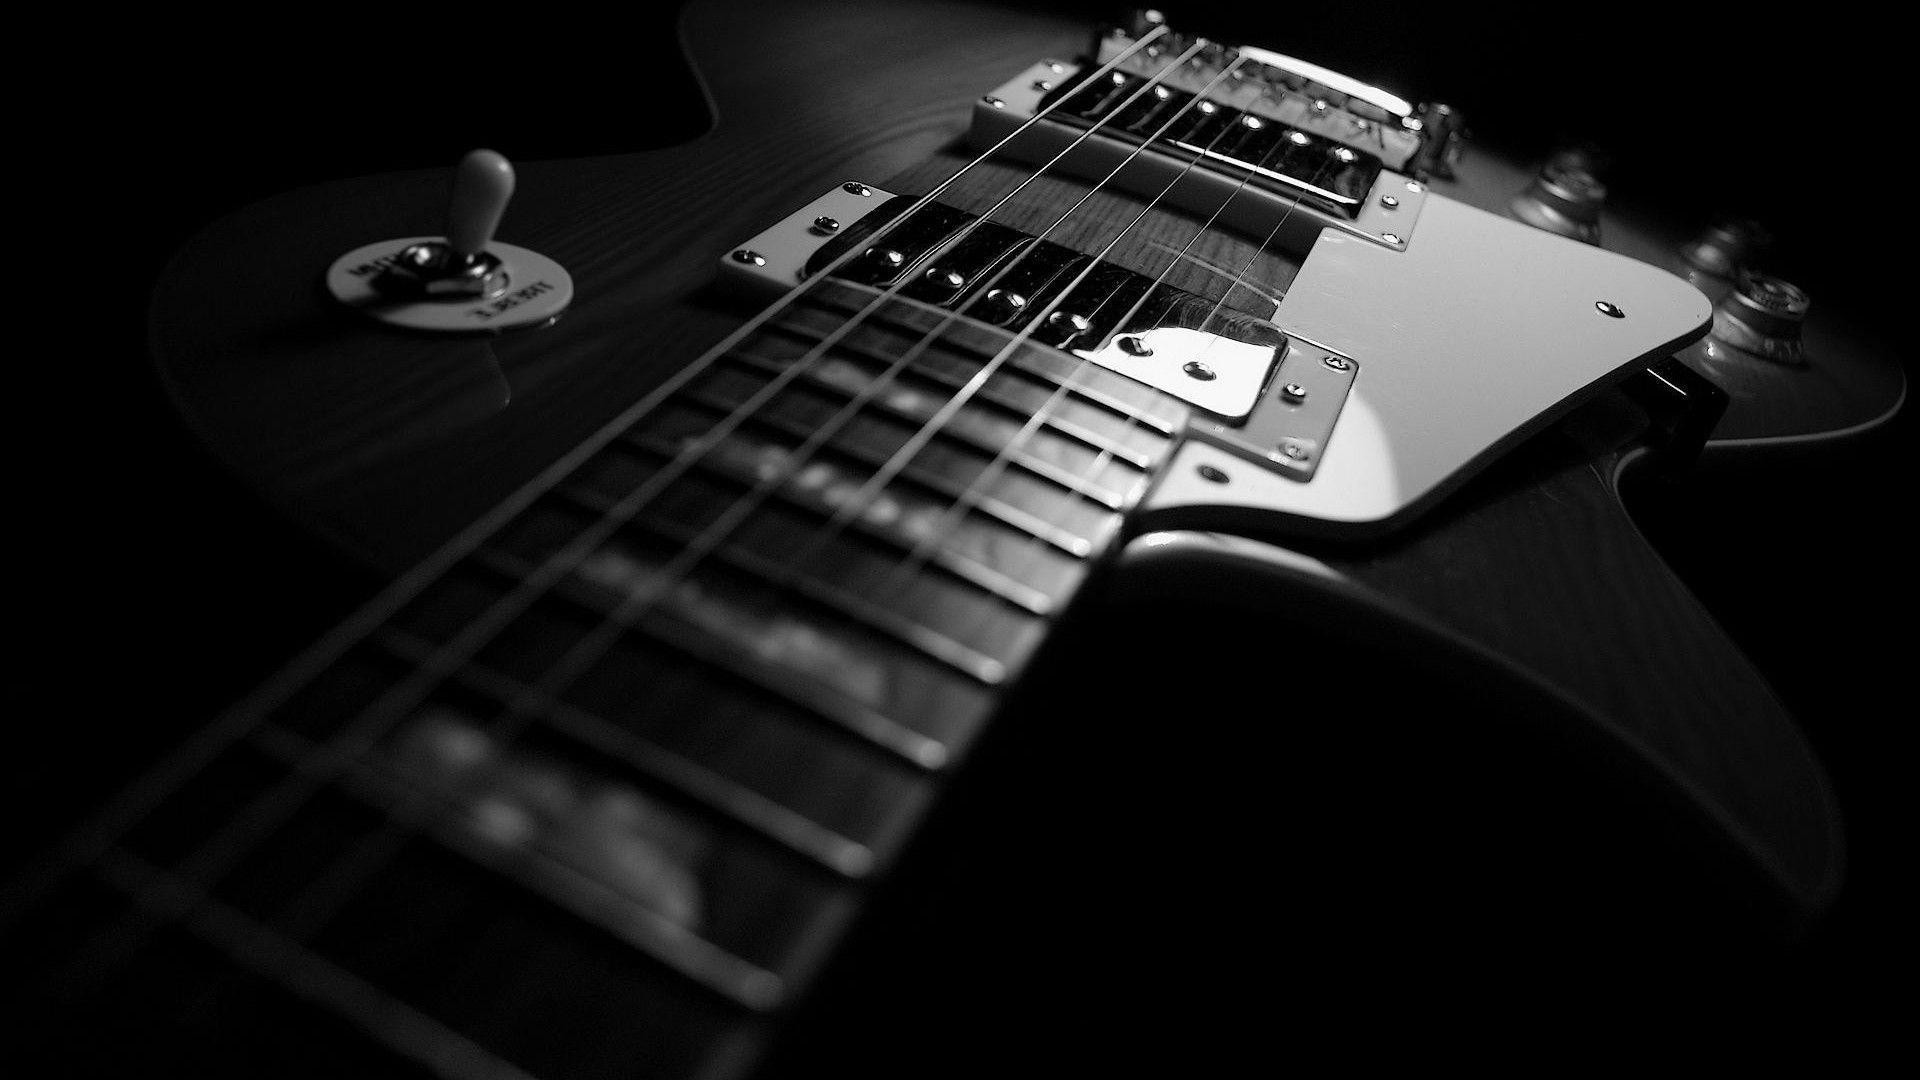 Res: 1920x1080, Wallpaper HD 1080p Black And White Guitar - Tuffboys.com